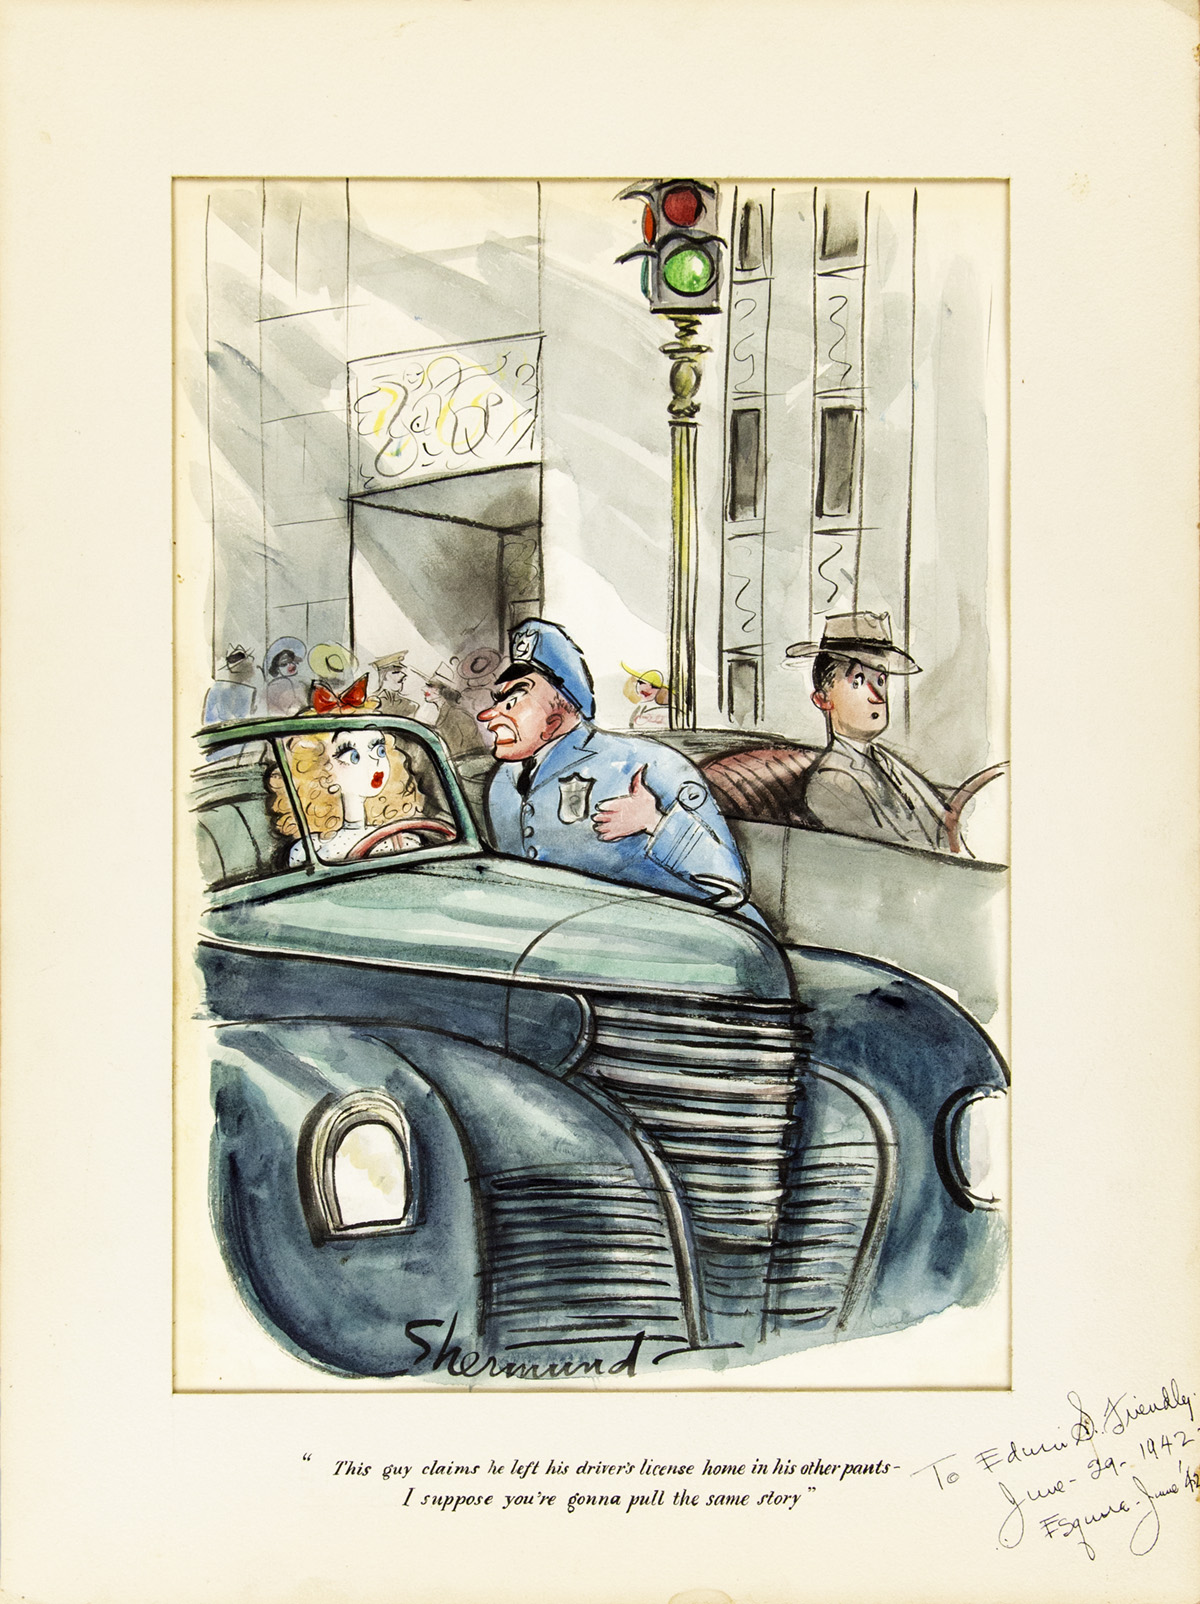 BARBARA SHERMUND.  [ESQUIRE / NEW YORKER CARTOONIST] This guy claims he left his drivers license home in his other pants...